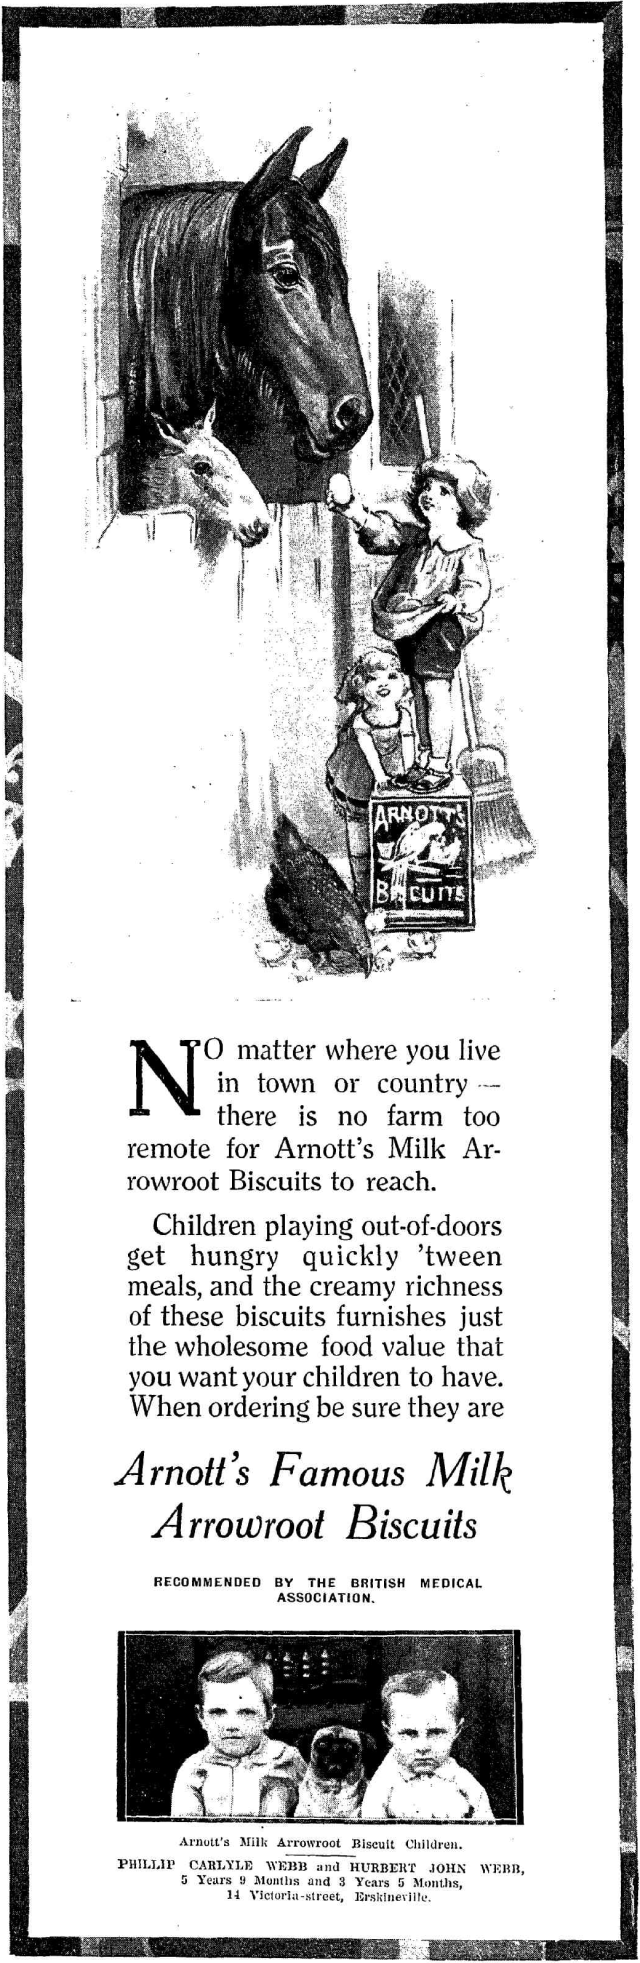 Arnott's Milk Arrowroot Biscuit Children - 1924.png